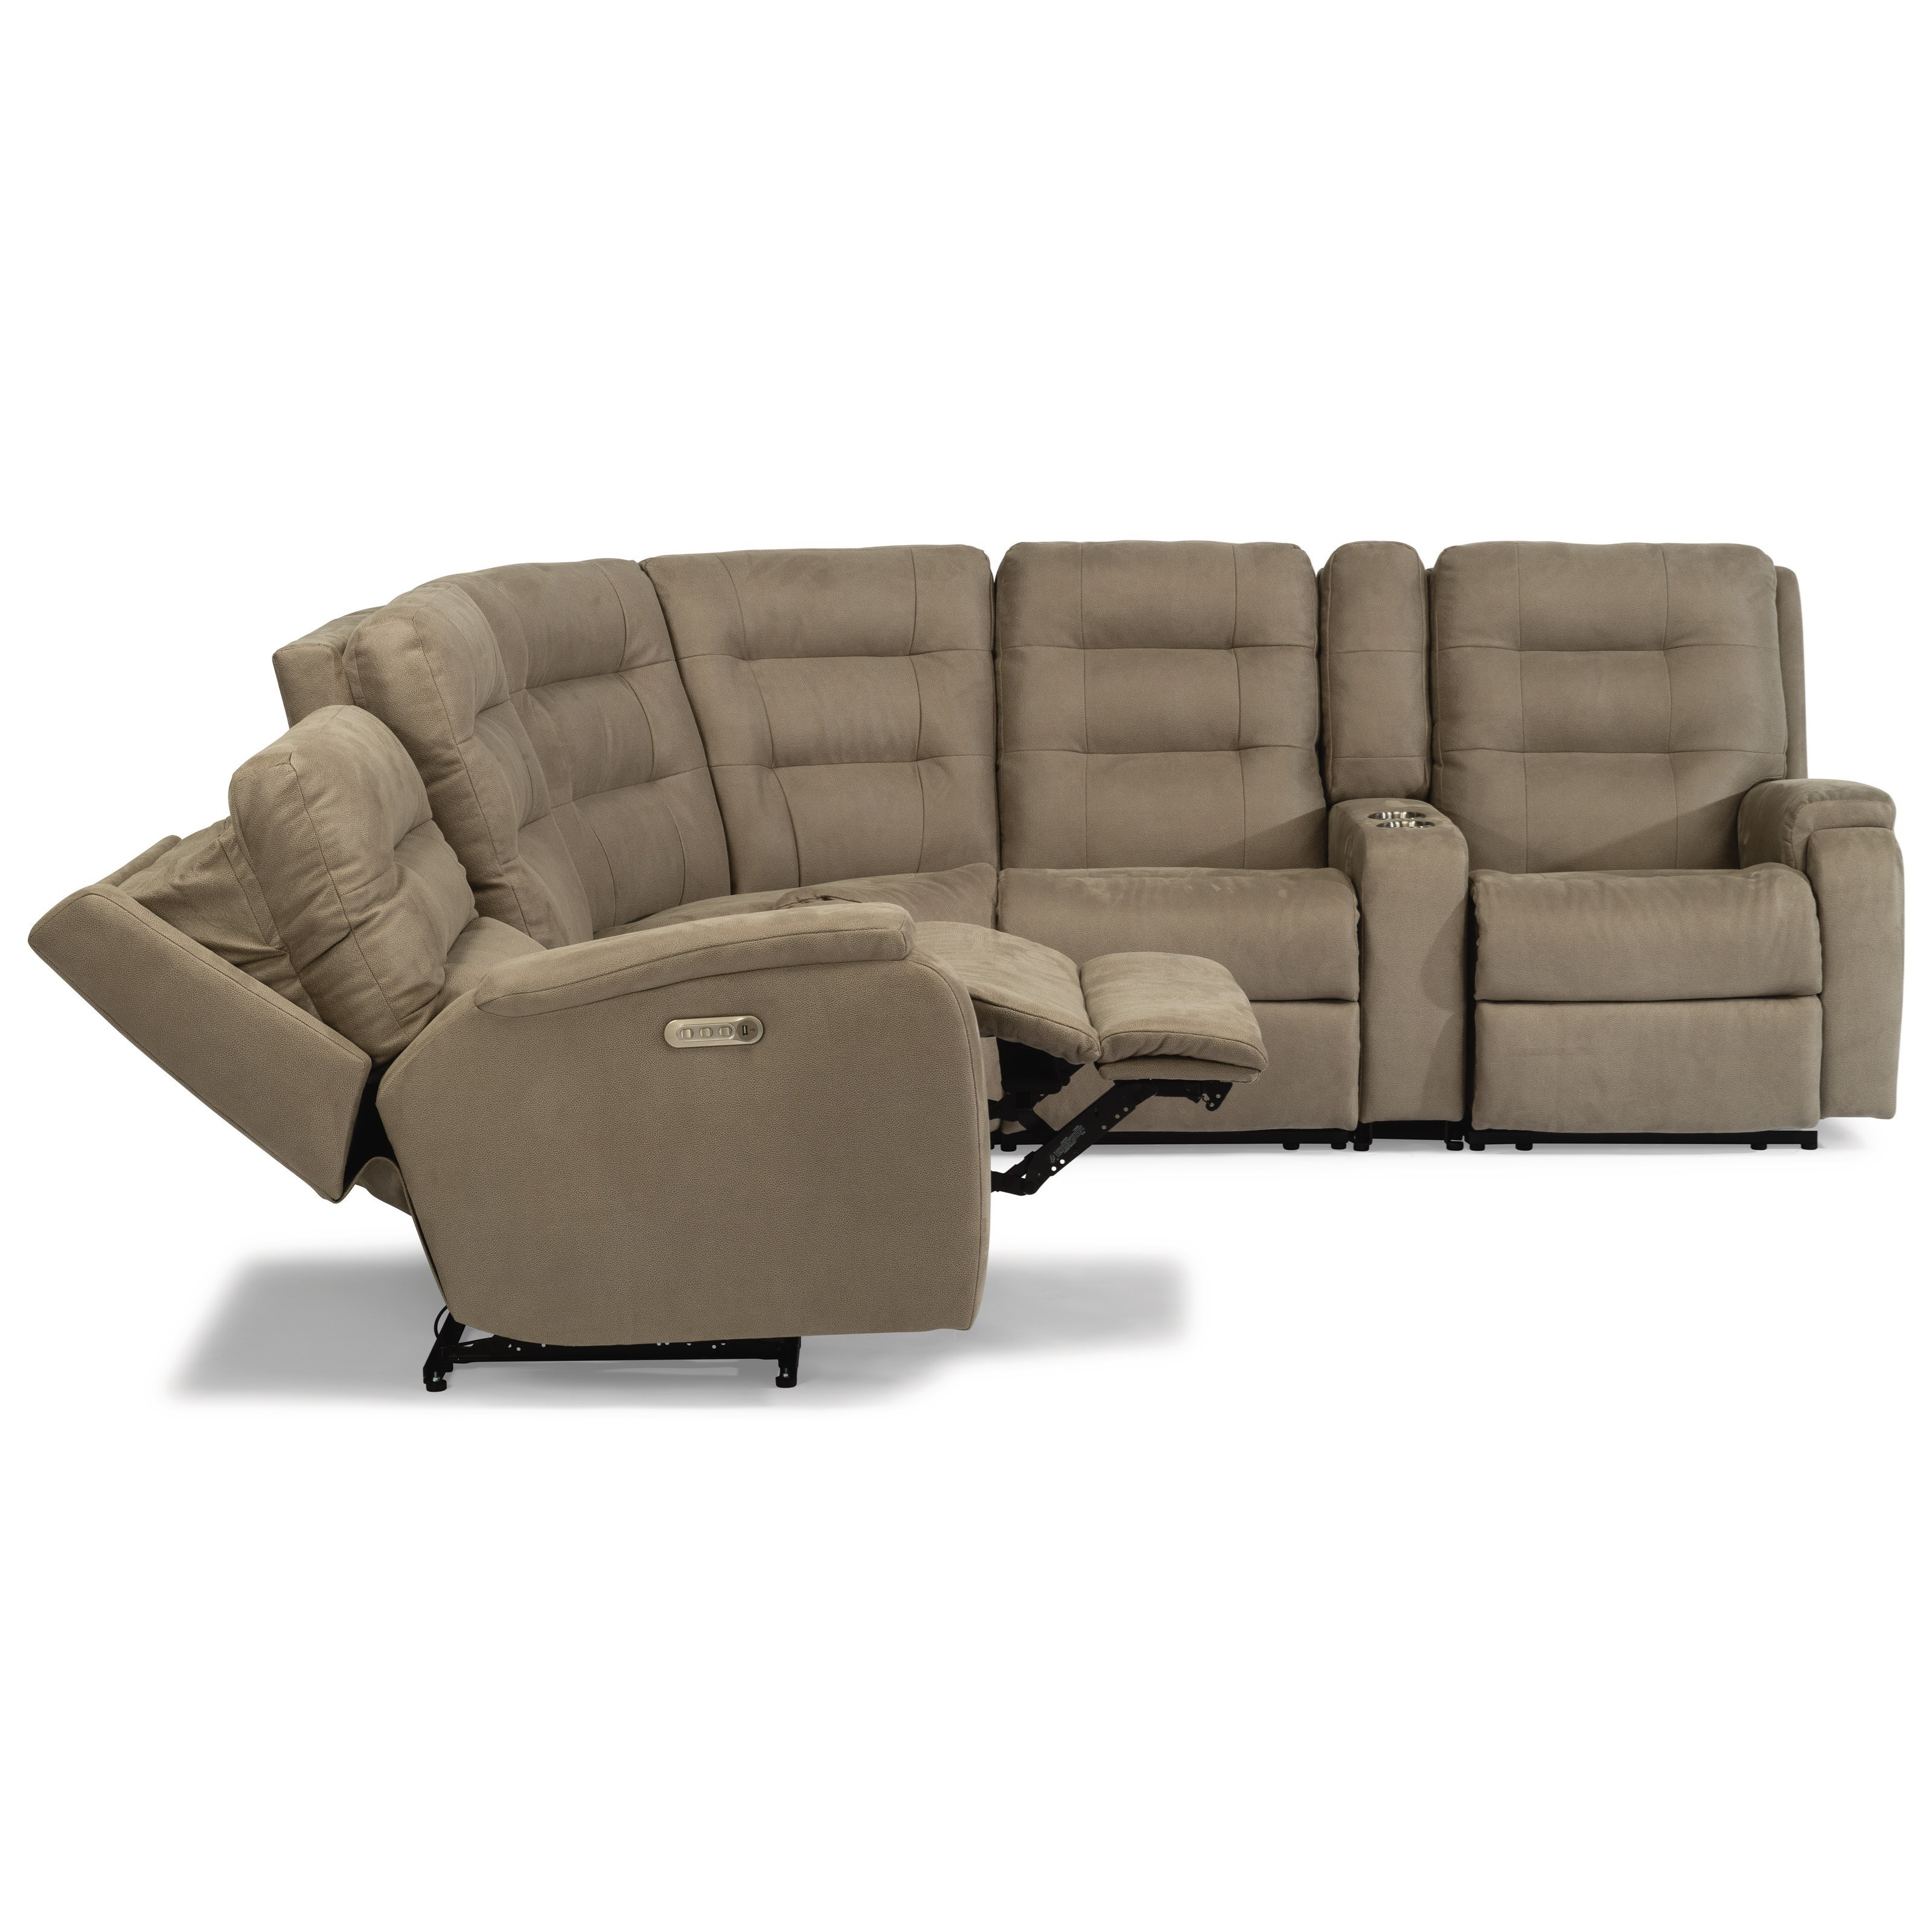 Contemporary 6-Piece Reclining Sectional with Cupholders